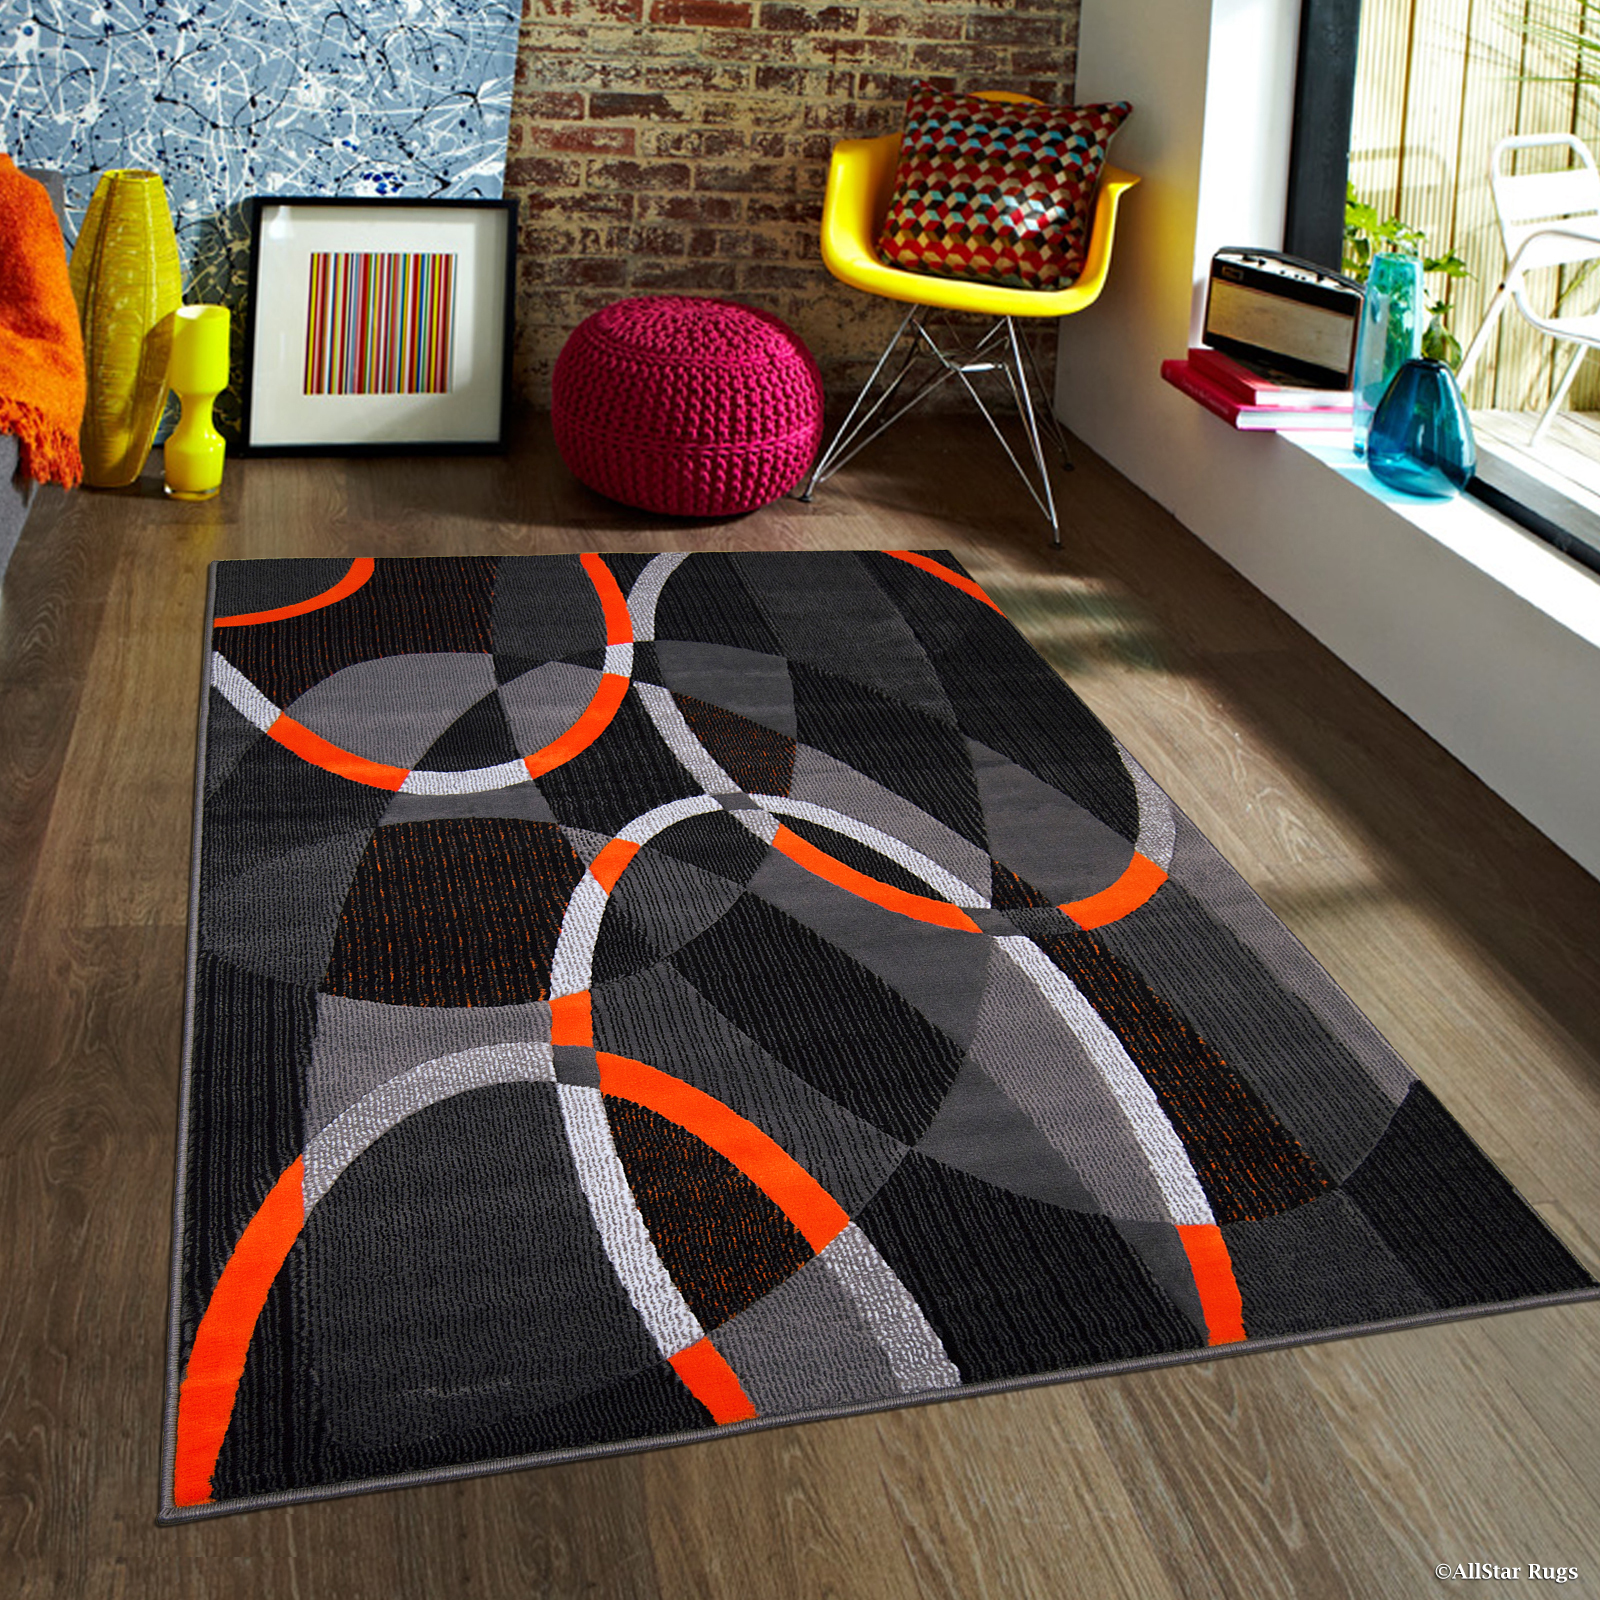 "Orange AllStar Modern. Contemporary Woven Area Rug. Drop-Stitch Weave Technique. Carved Effect. Vivid Pop Colors (5' x 6' 11"")"